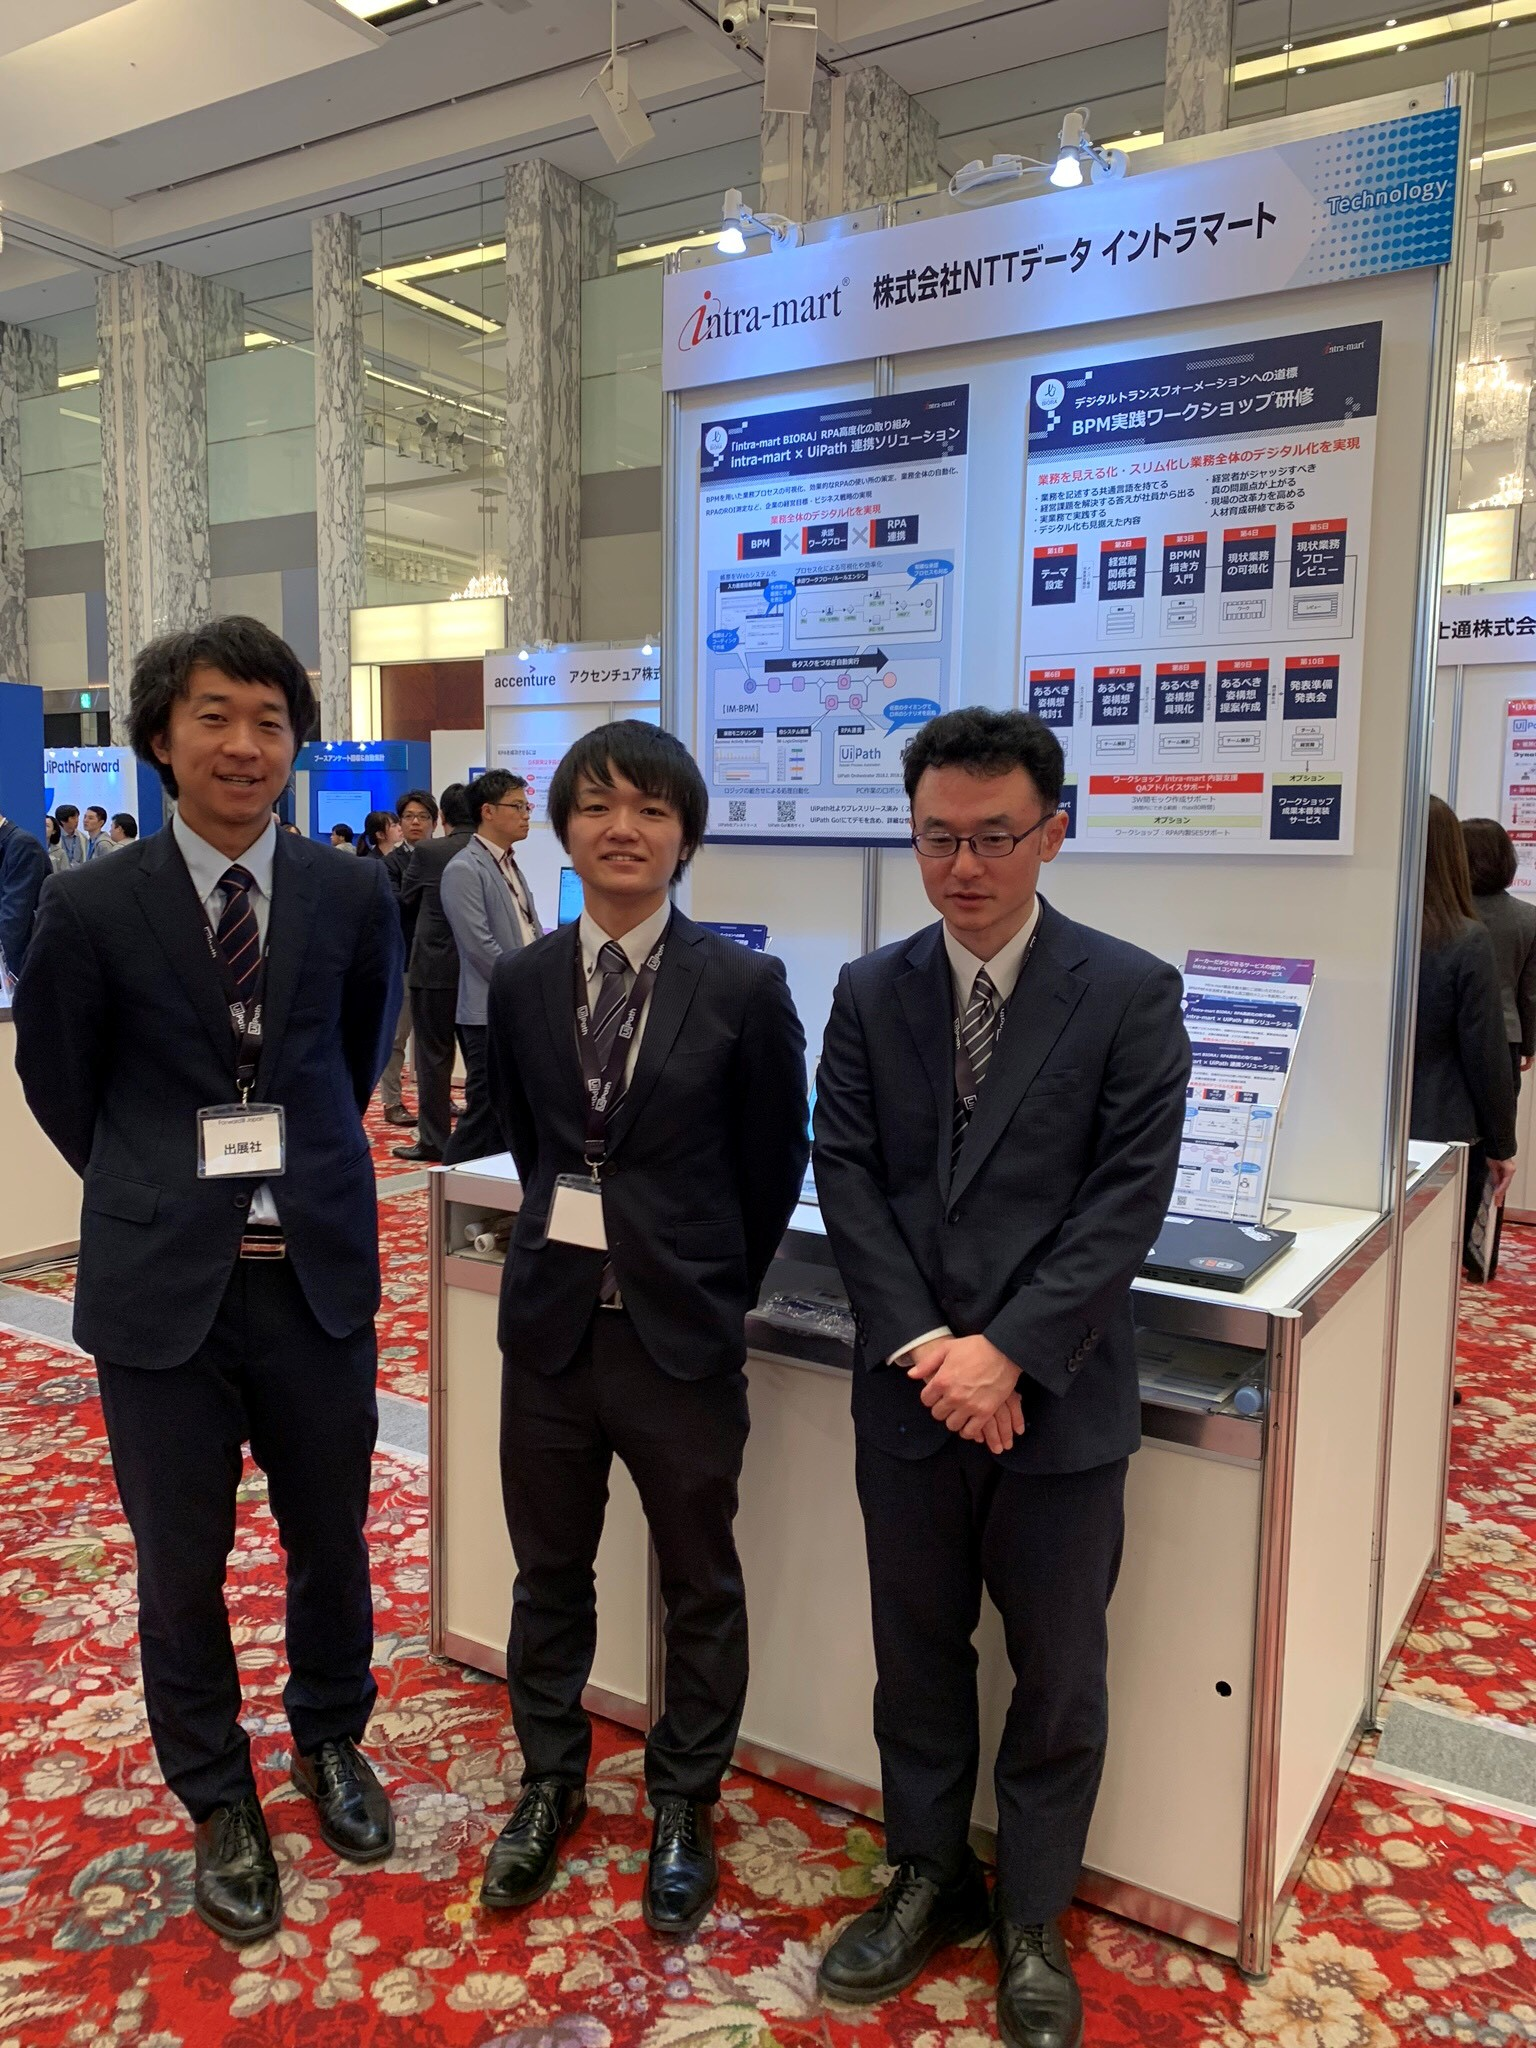 digibiz-uipath-forward-3-japan-2